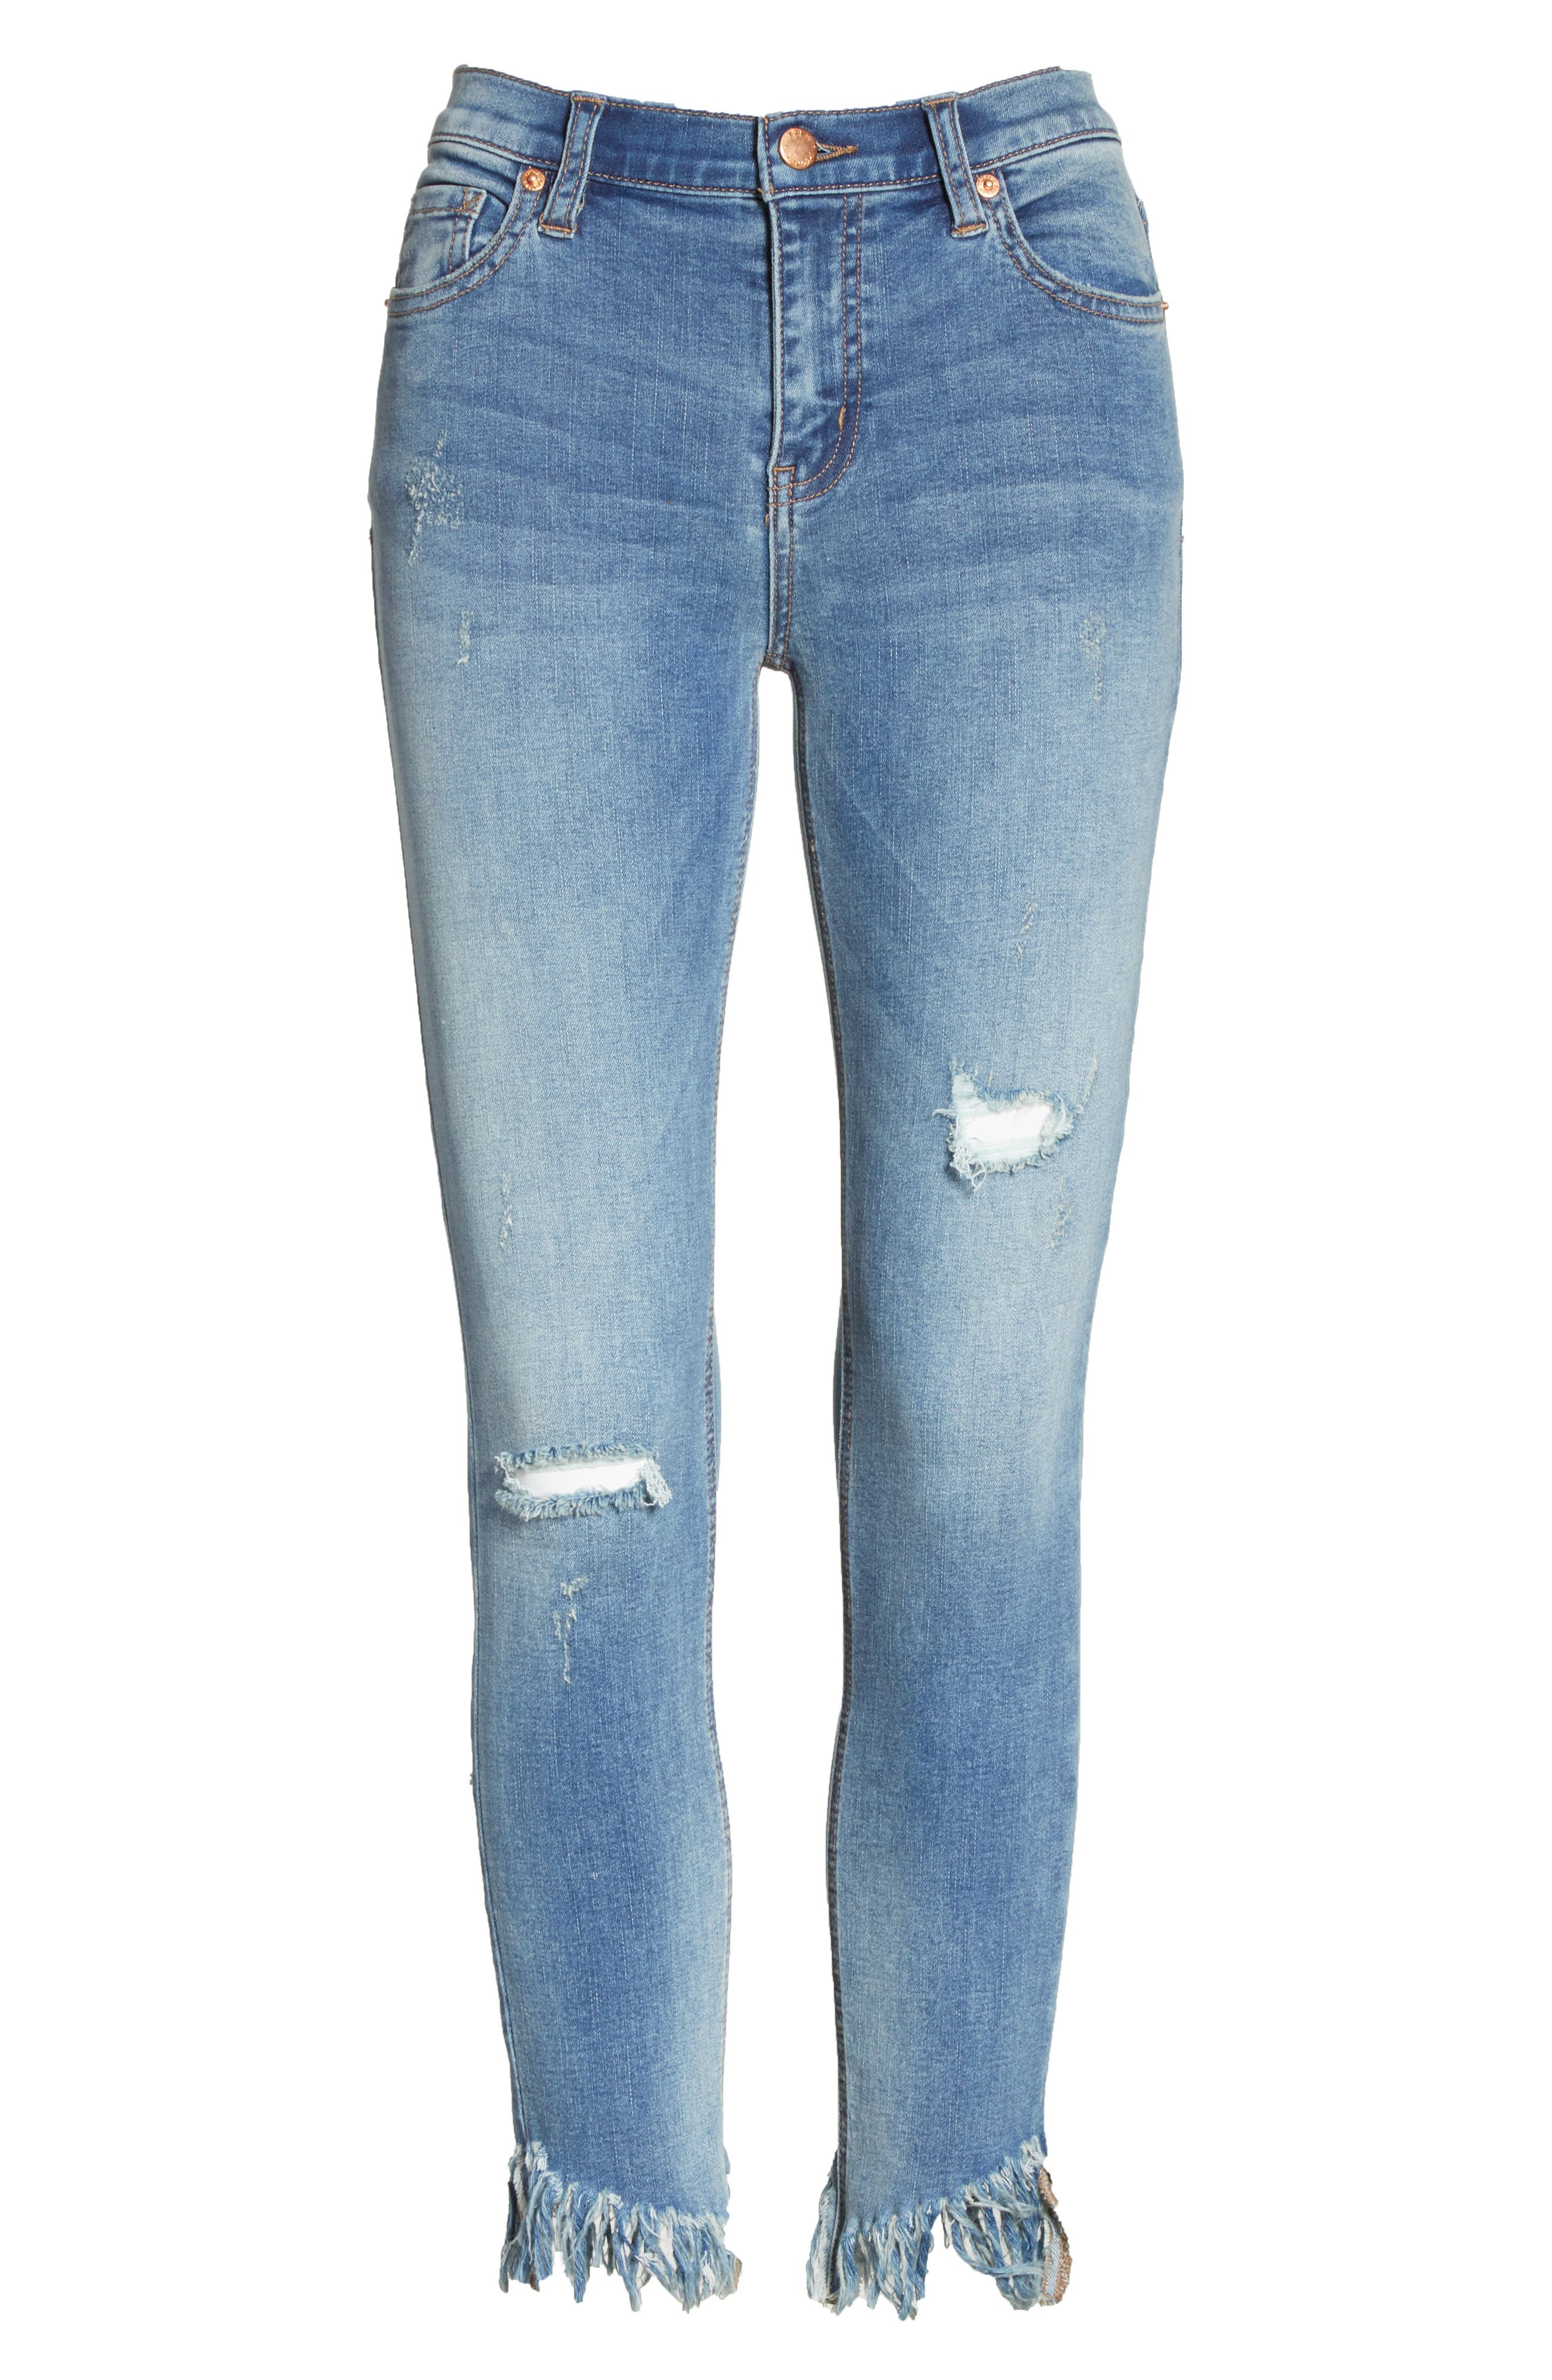 Great Heights Frayed Skinny Jeans,                             Alternate thumbnail 6, color,                             Sky